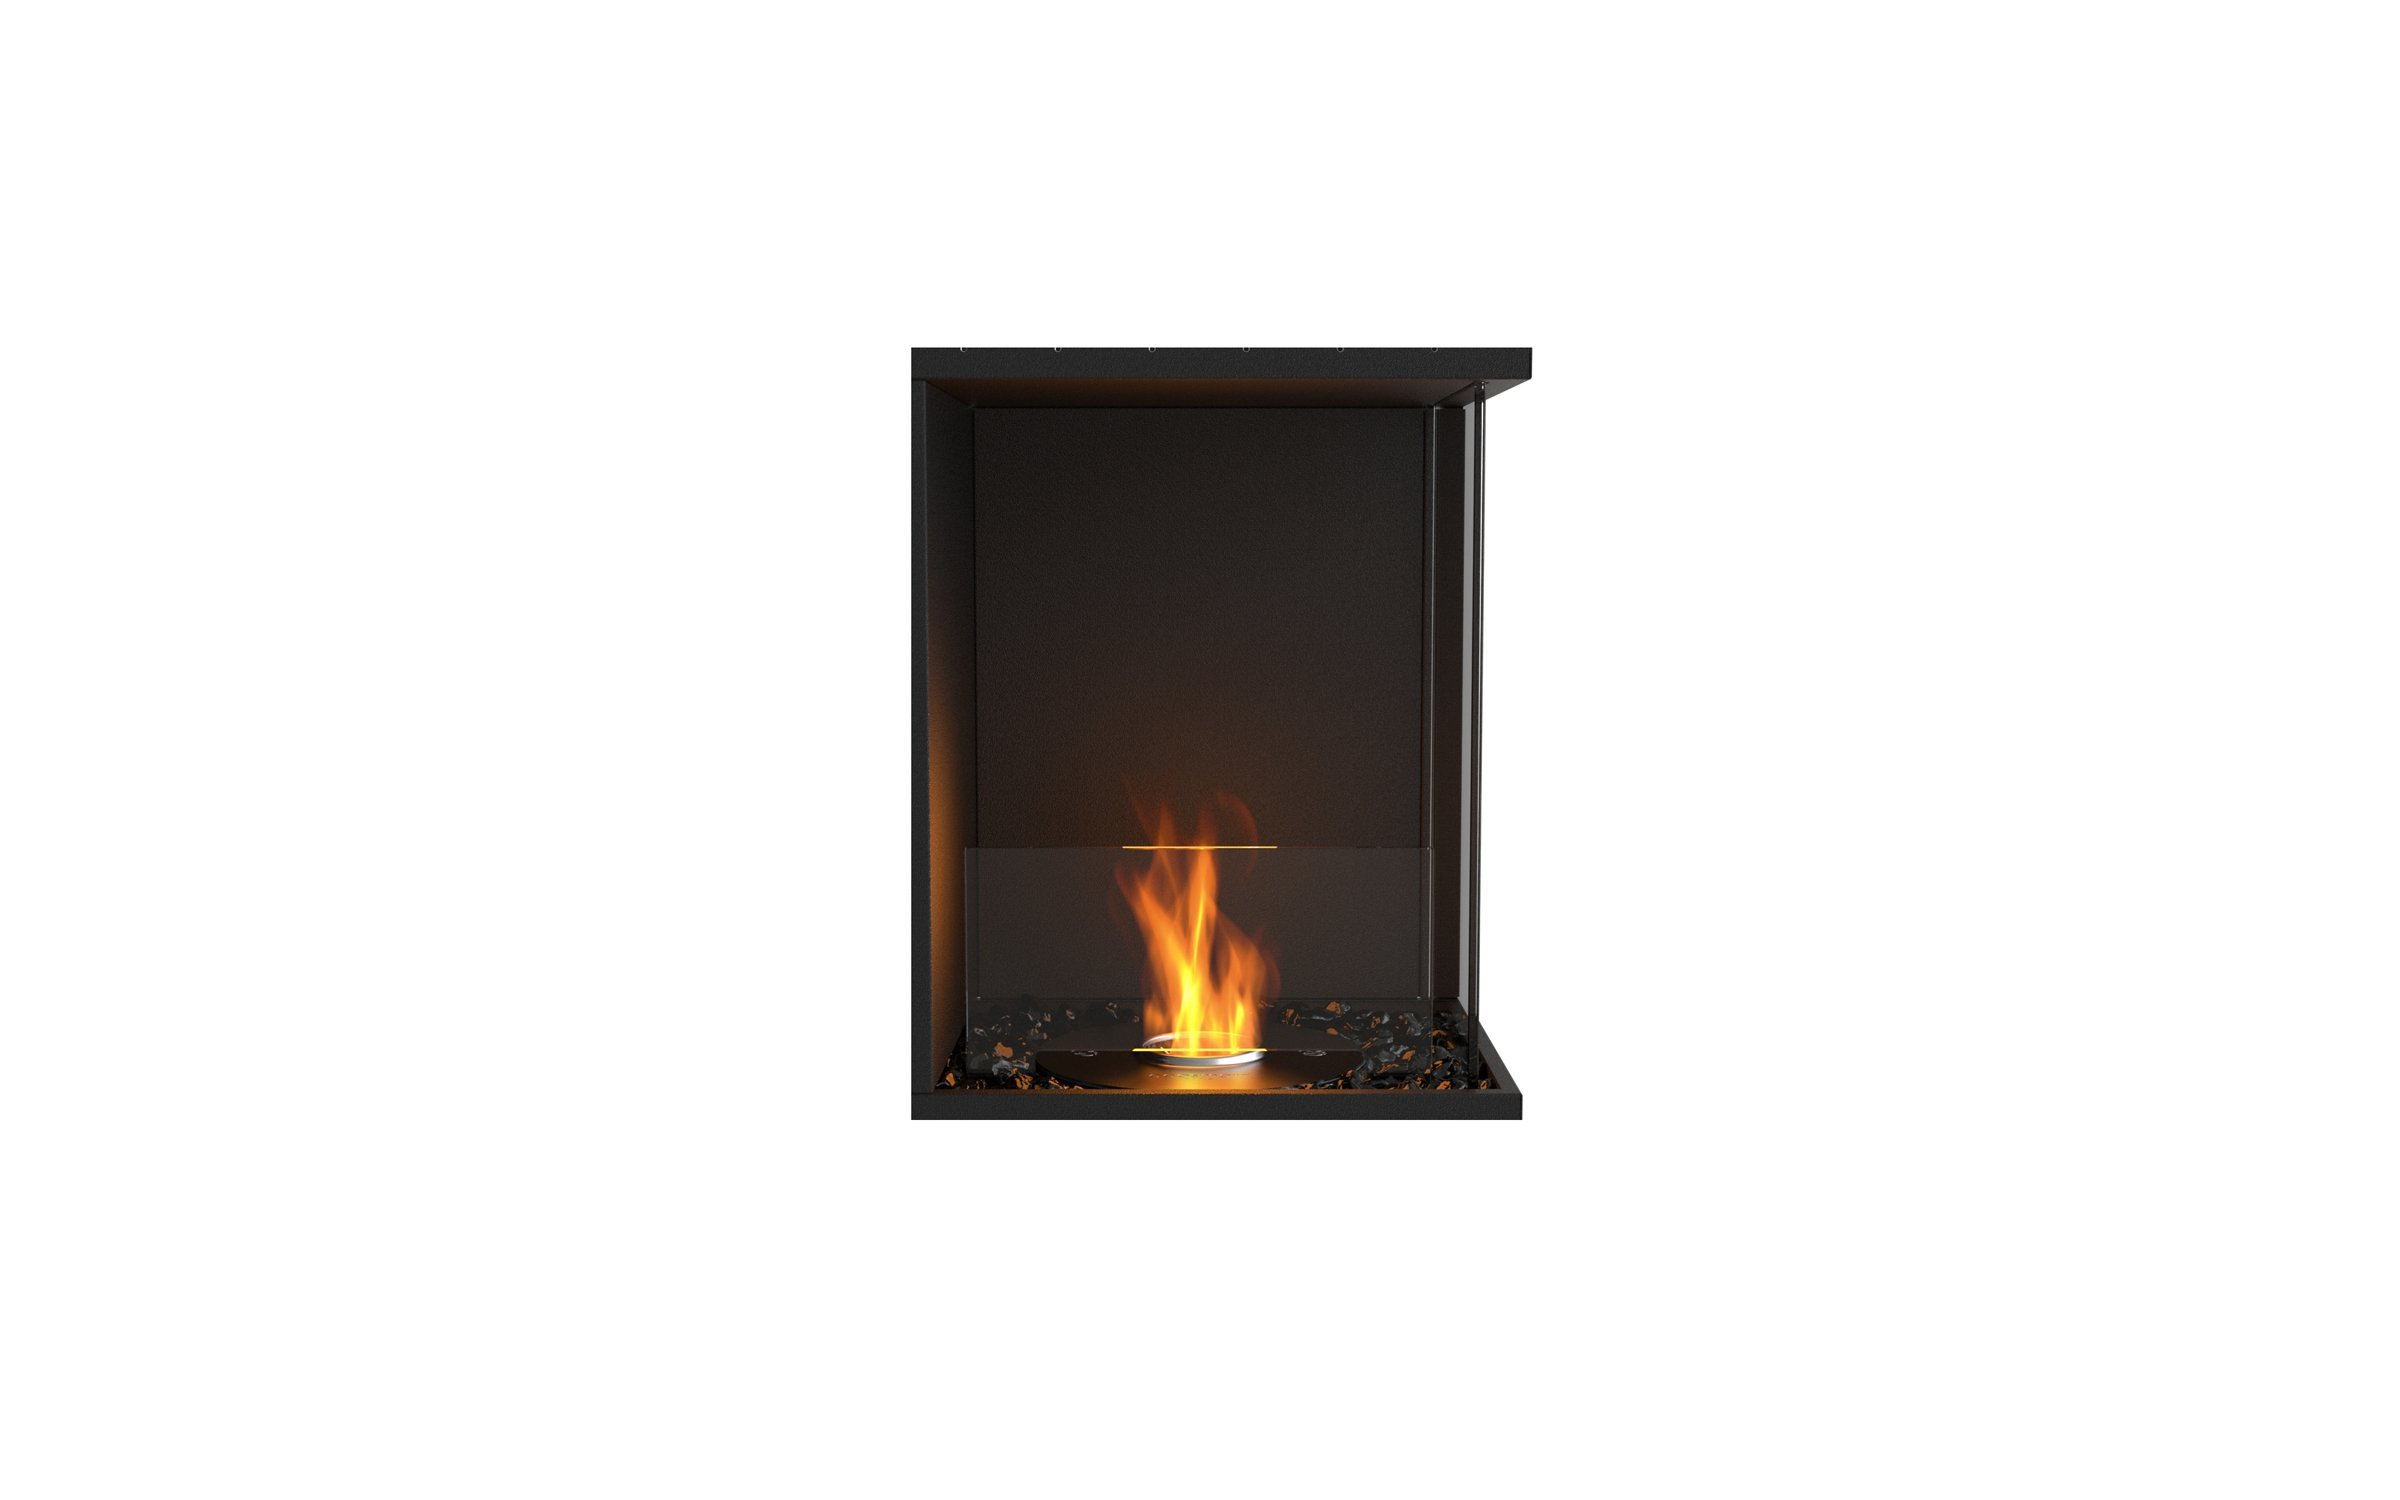 EcoSmart Fire ESF.FX.18RC Flex Right Corner Firebox Insert, Black by EcoSmart Fire